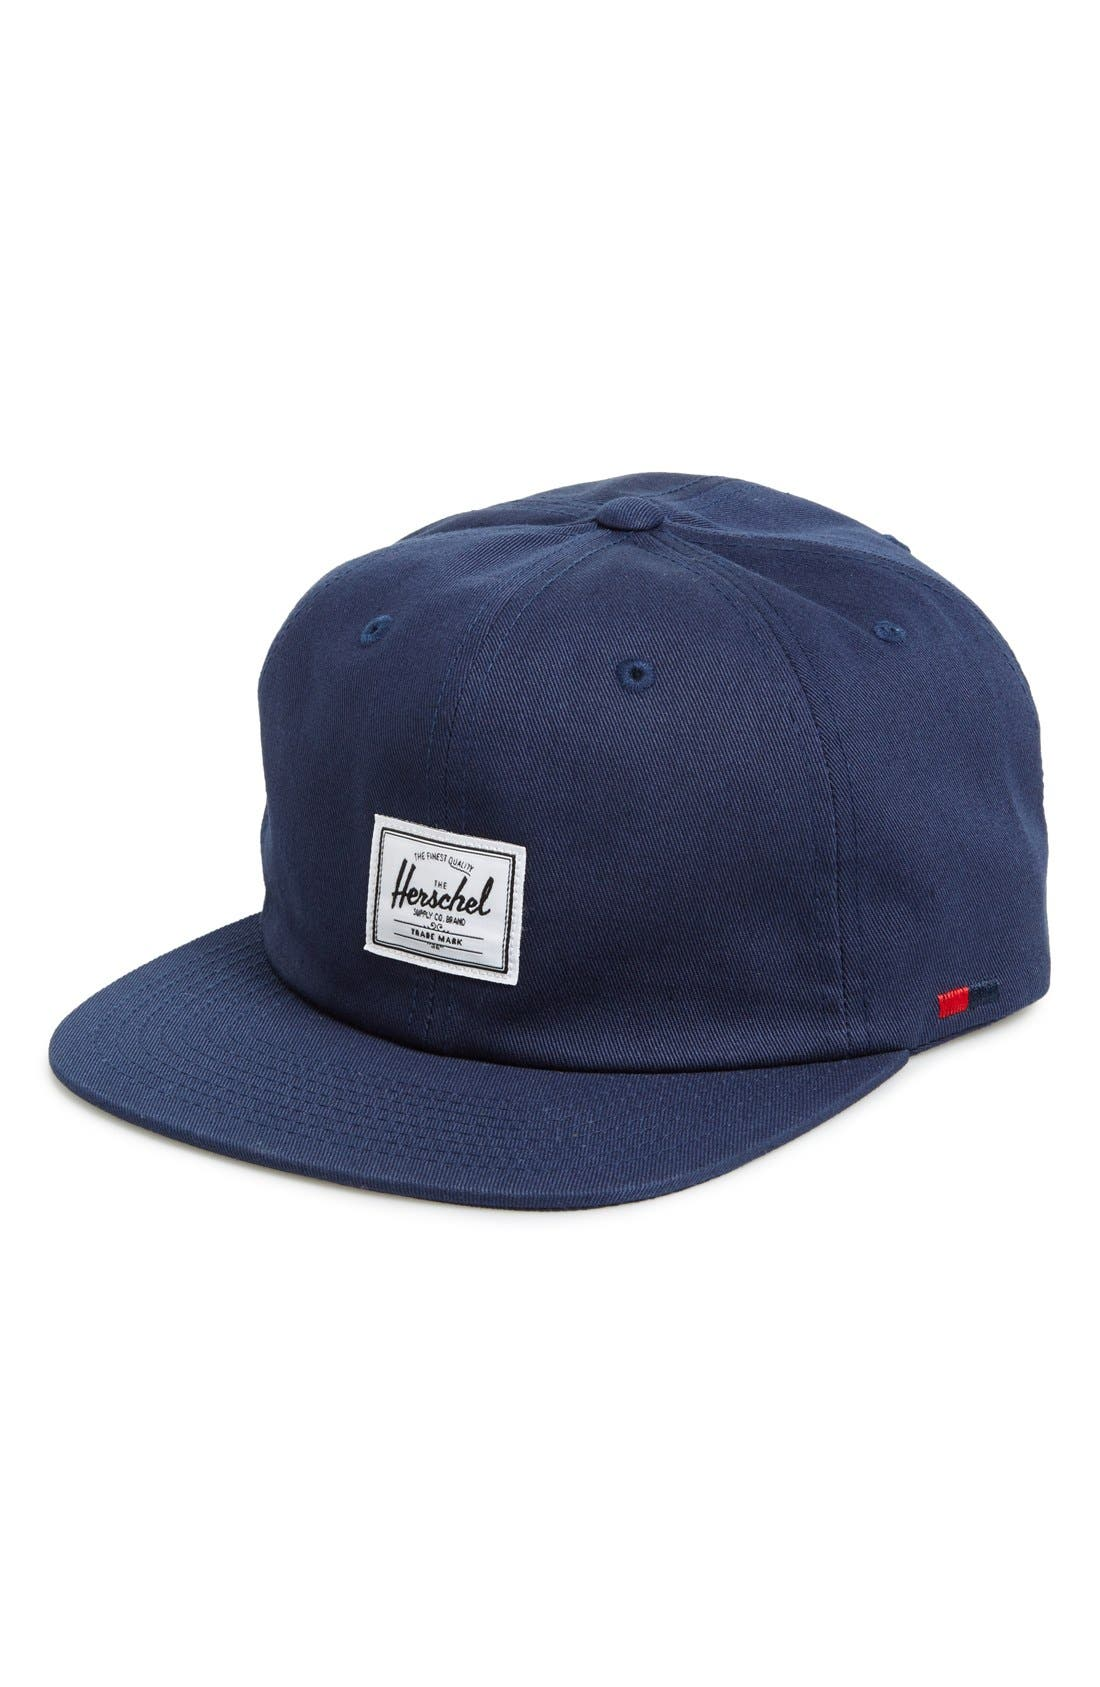 Herschel Supply Co. 'Albert' Cotton Baseball Cap